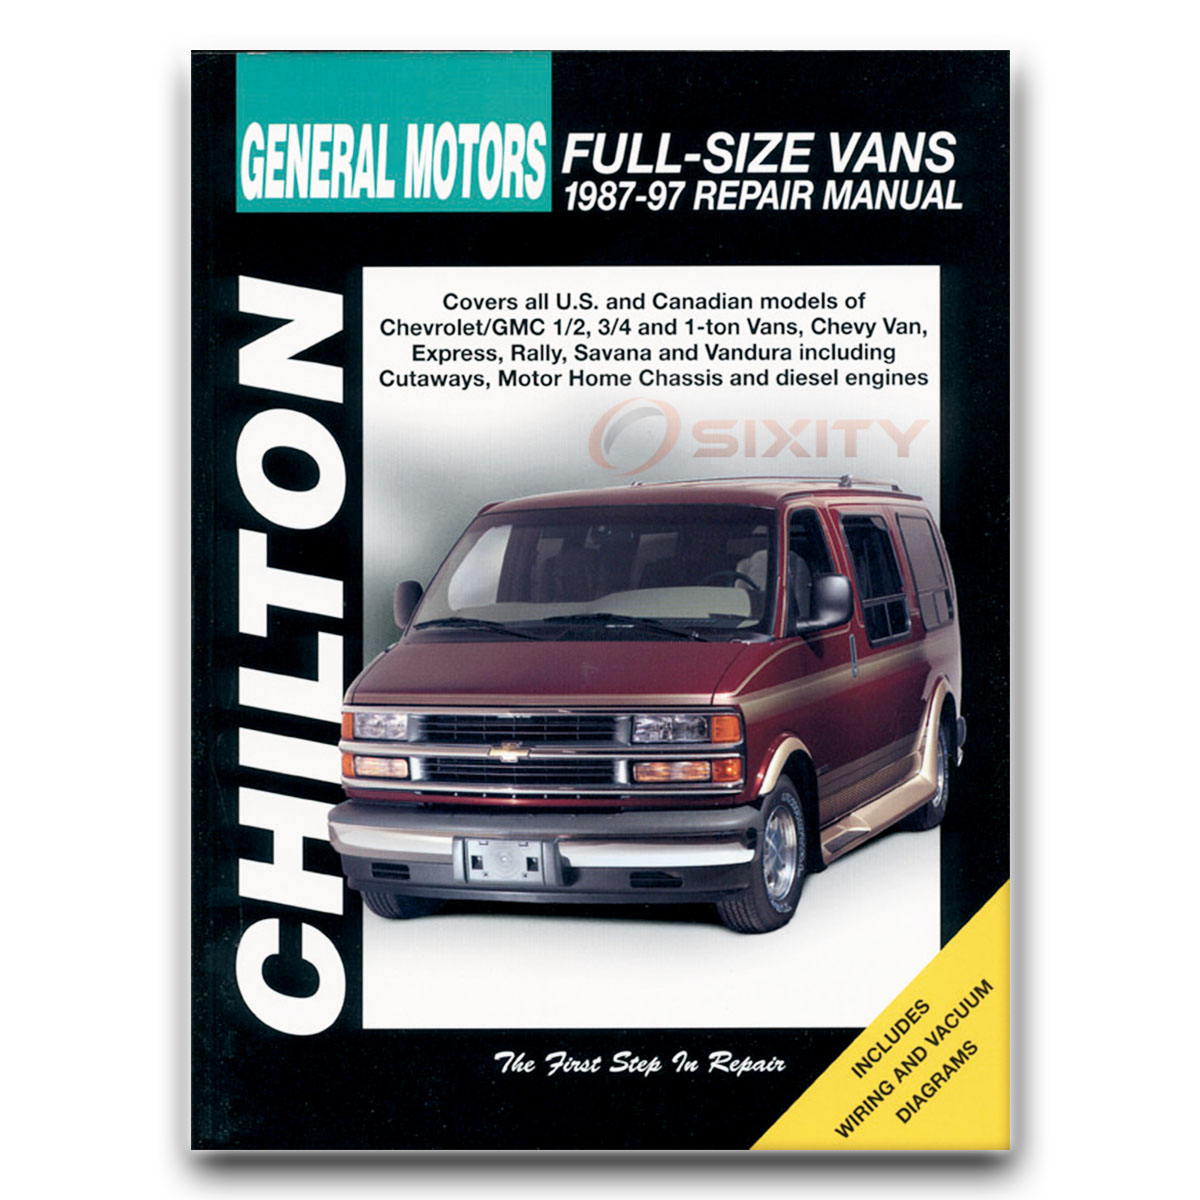 gmc g2500 chilton repair manual rally vandura stx shop service rh ebay com 1990 GMC Vandura 2500 1990 GMC Vandura 2500